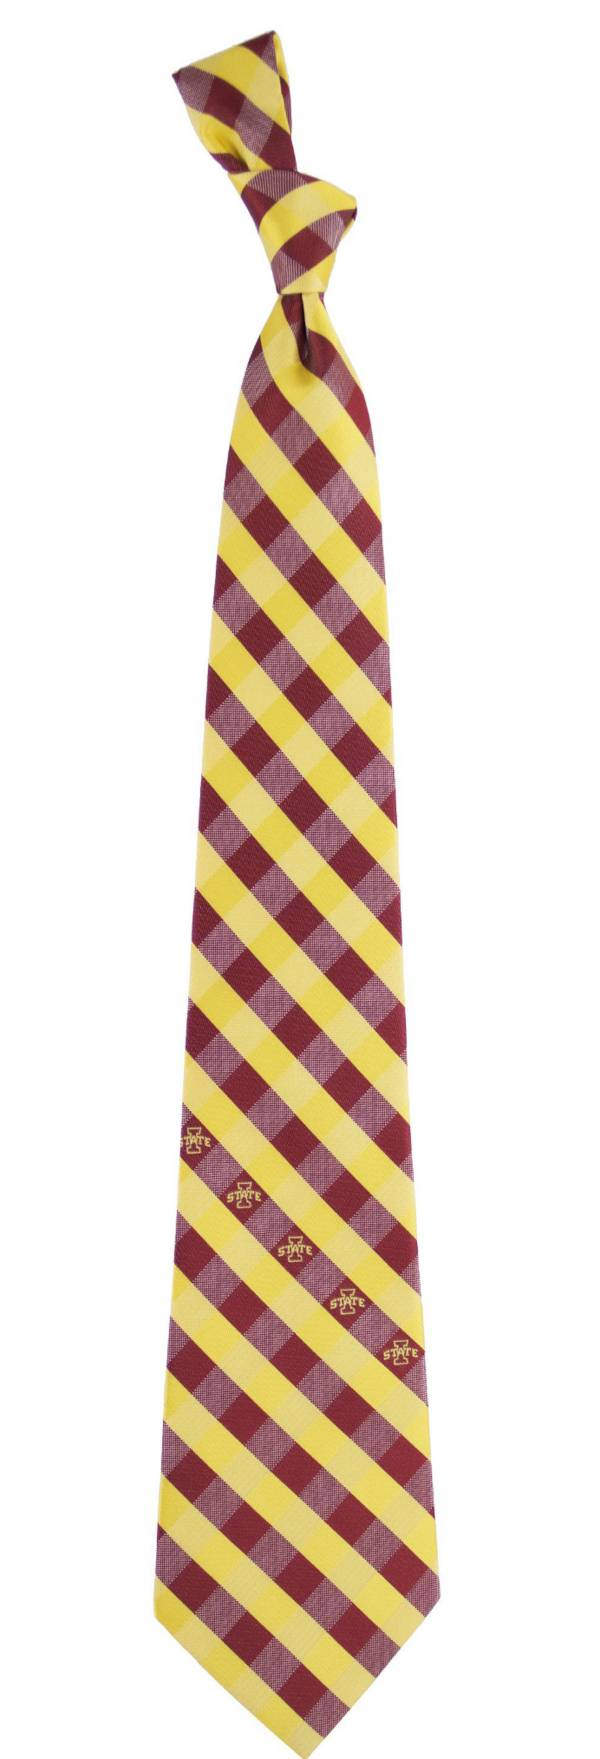 Eagles Wings Iowa State Cyclones Check Necktie product image